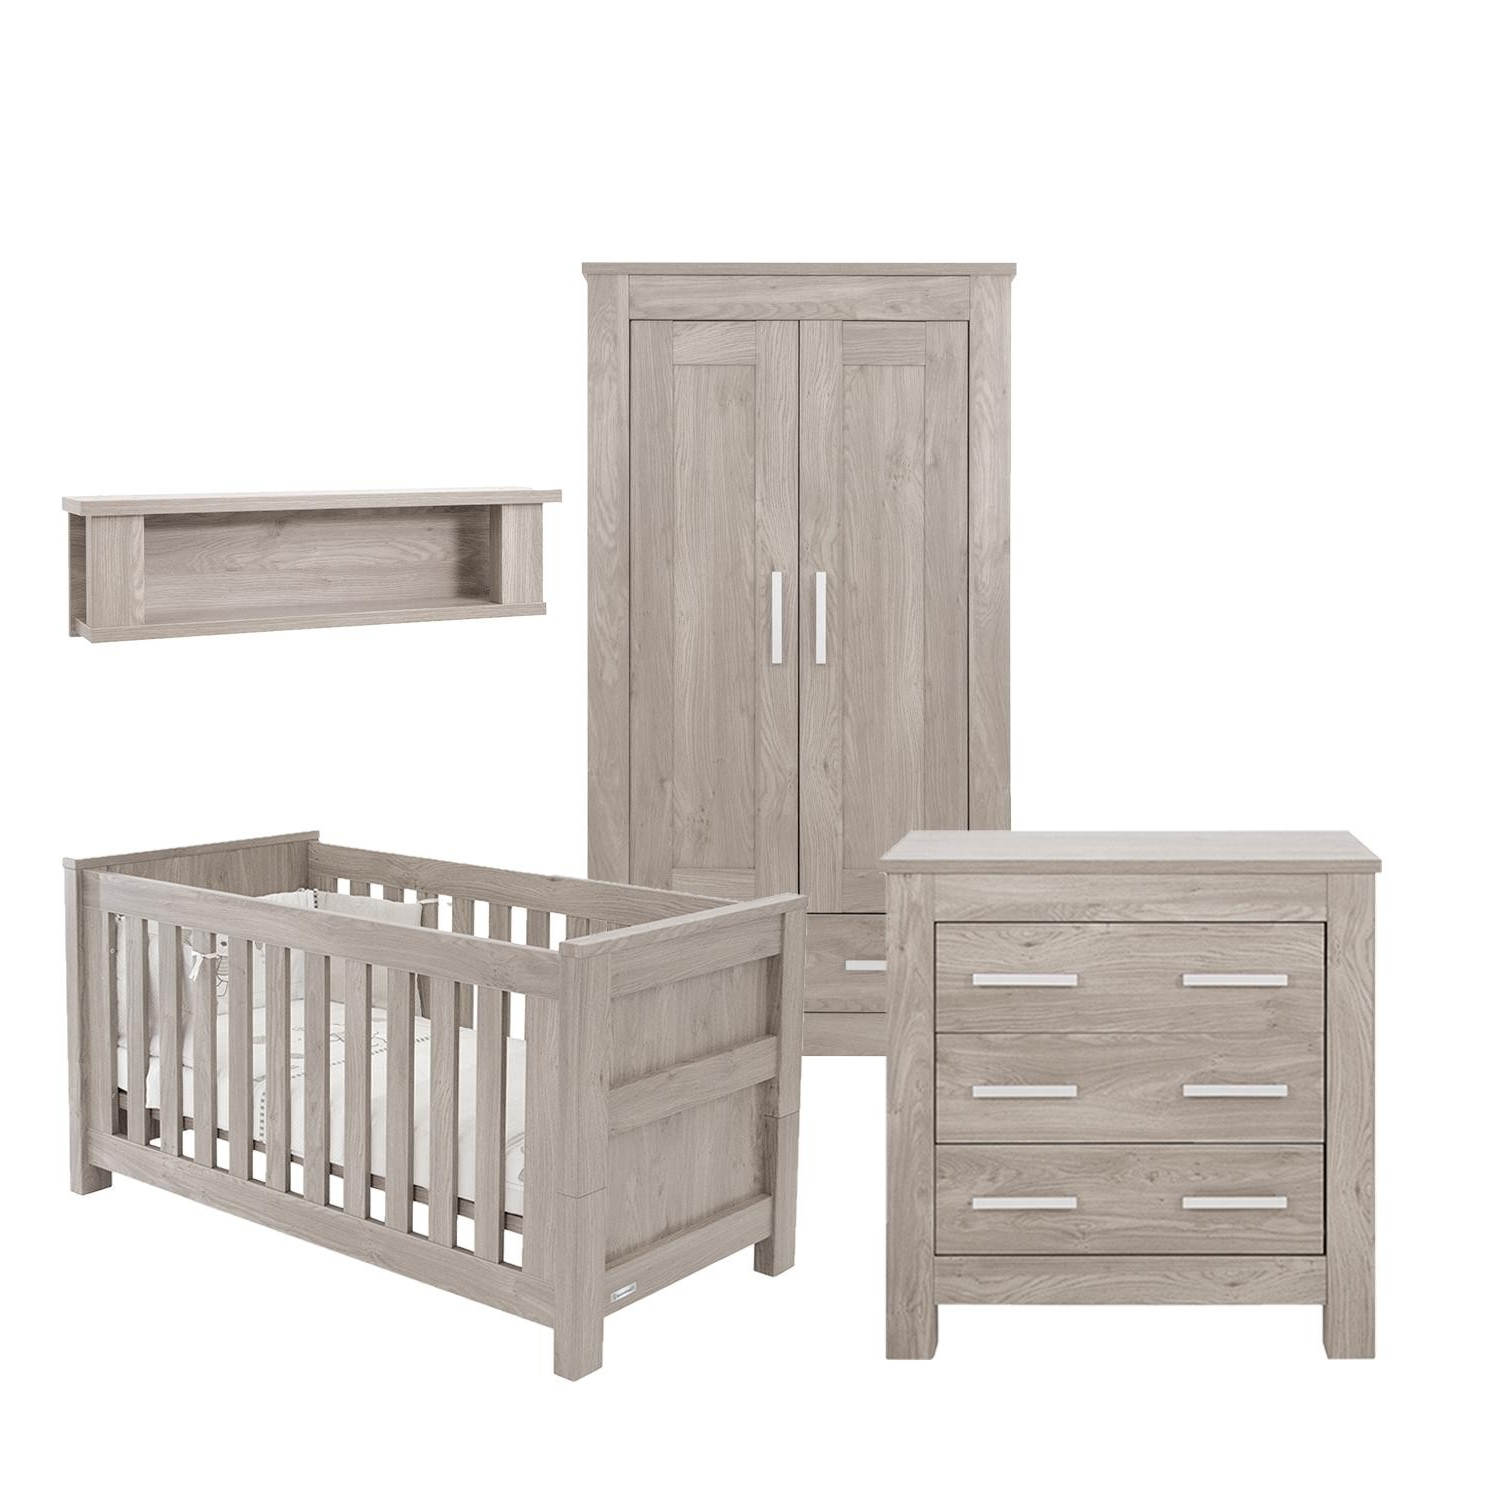 2017 Bordeaux Wardrobes Throughout Babystyle Bordeaux Ash 4 Piece Furniture Set Cotbed Wardrobe (View 1 of 15)